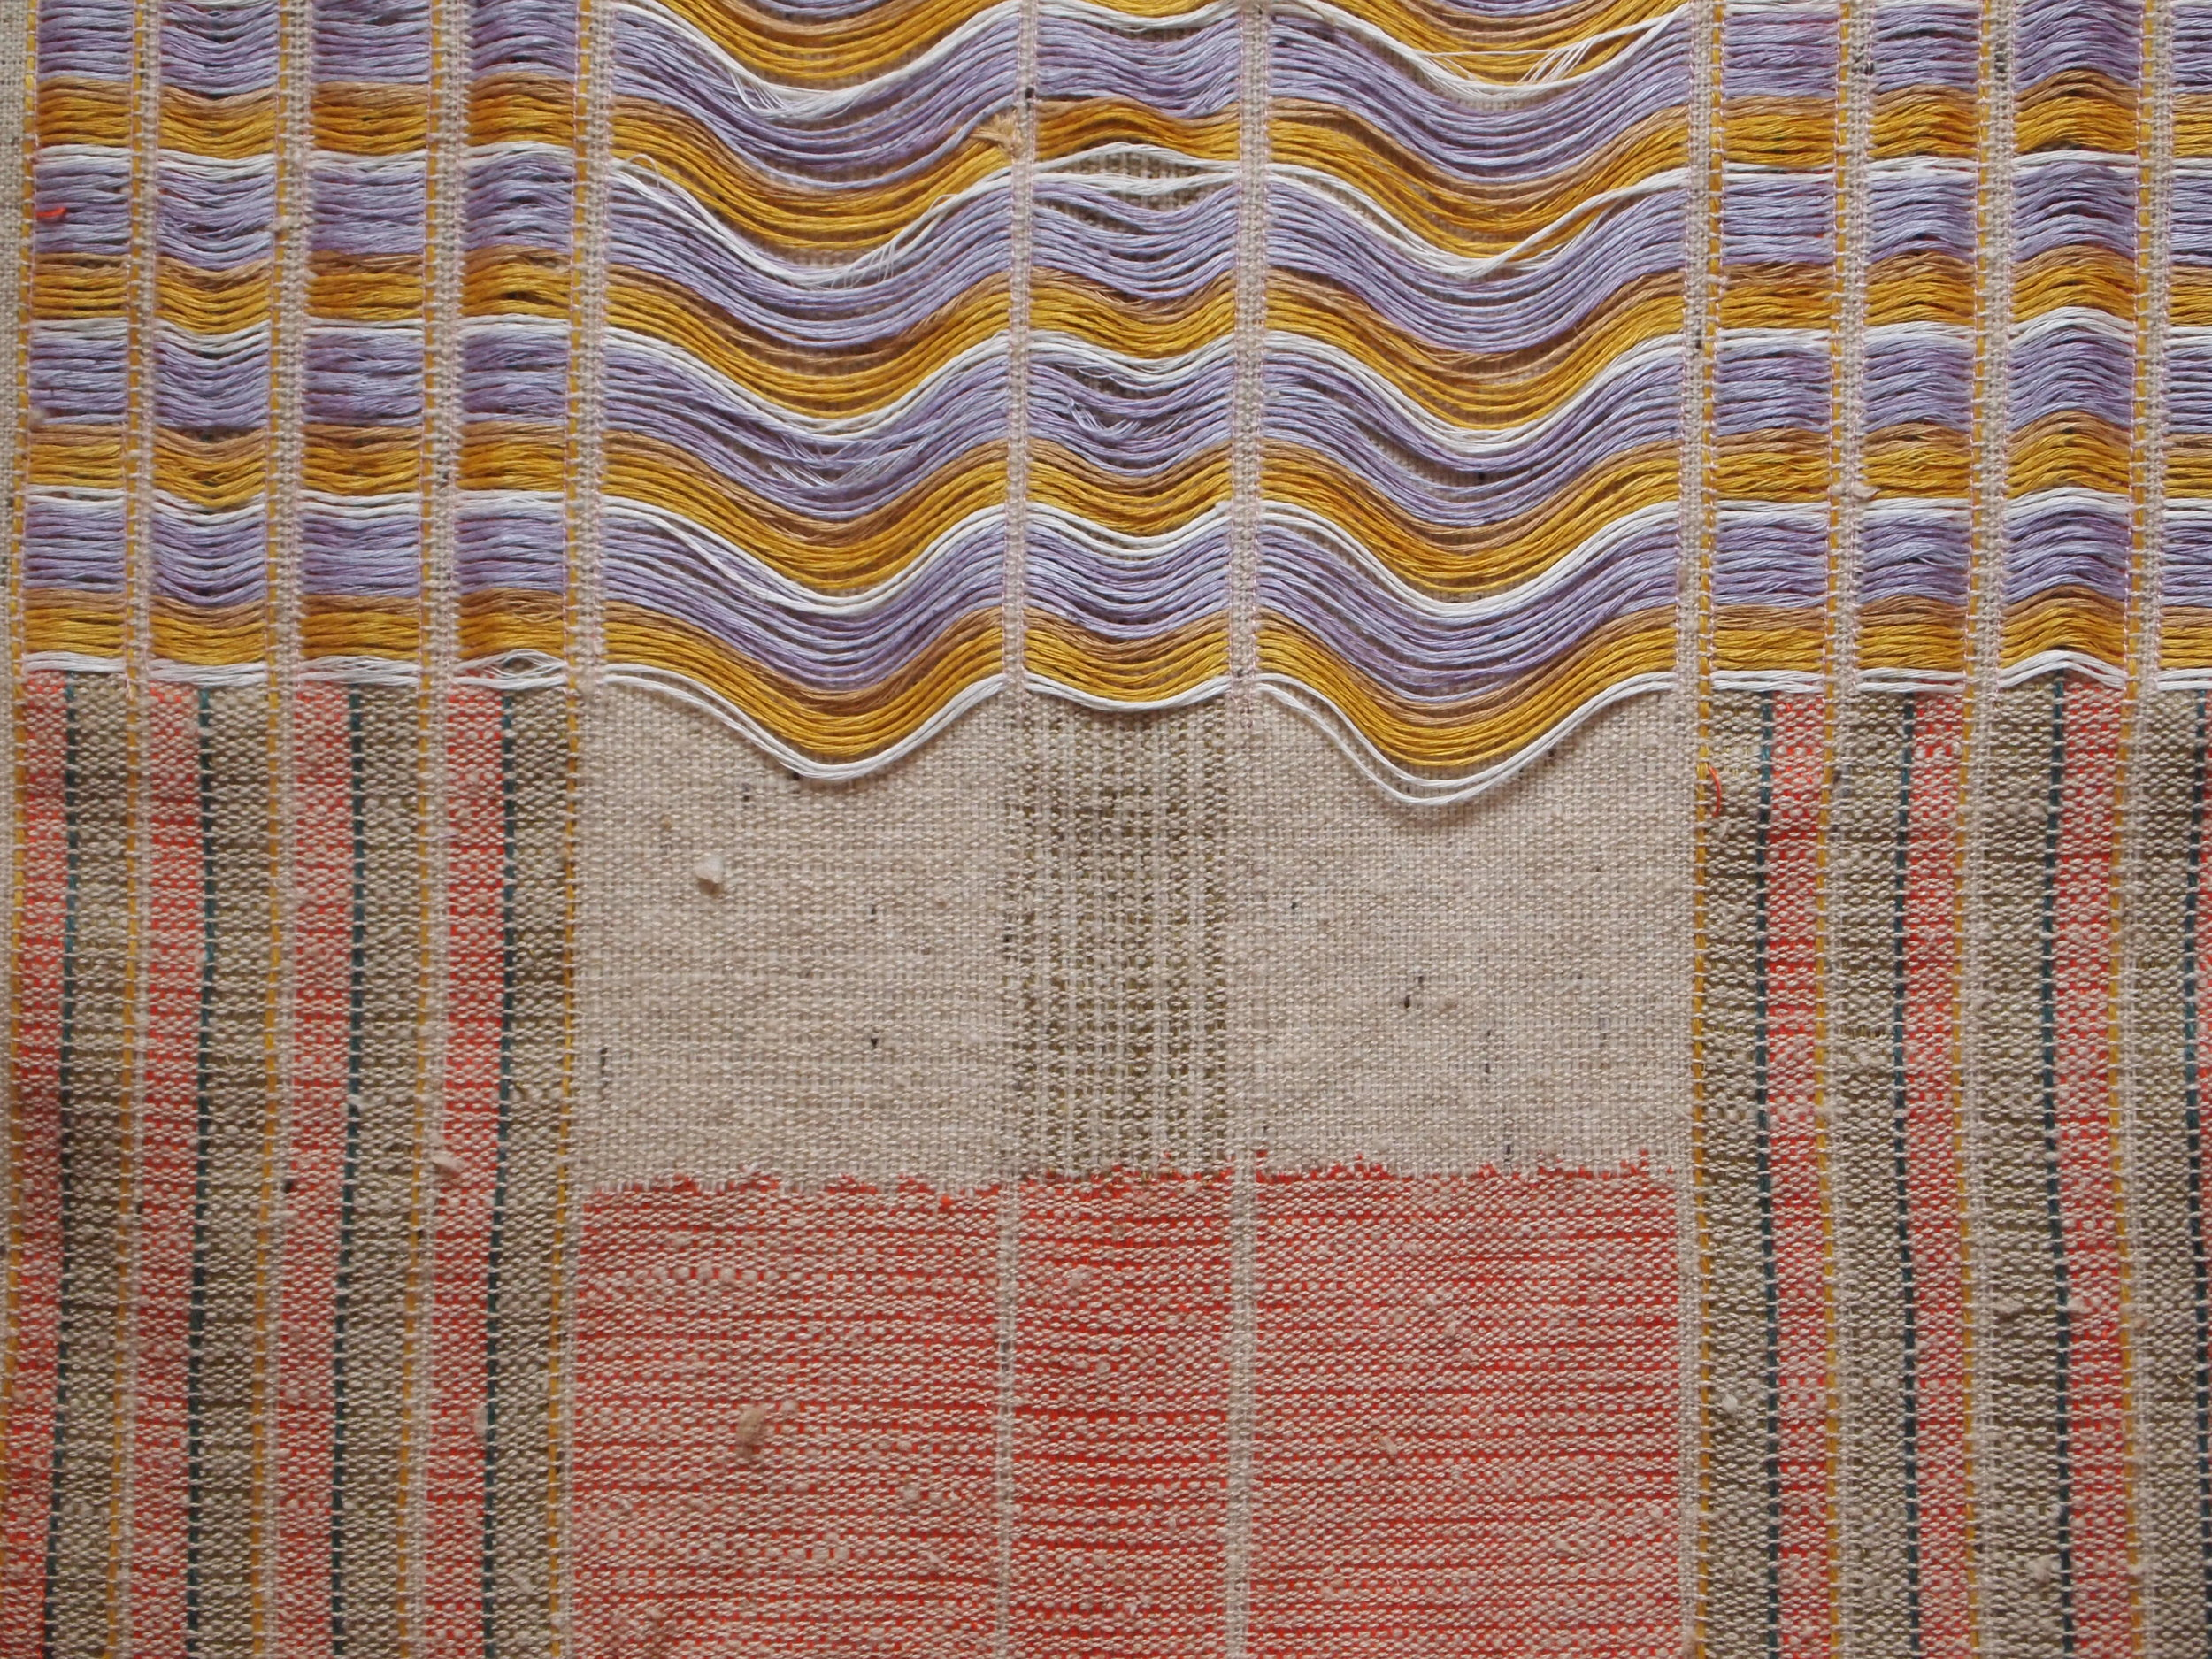 Woven piece using naturally dyed yarn.